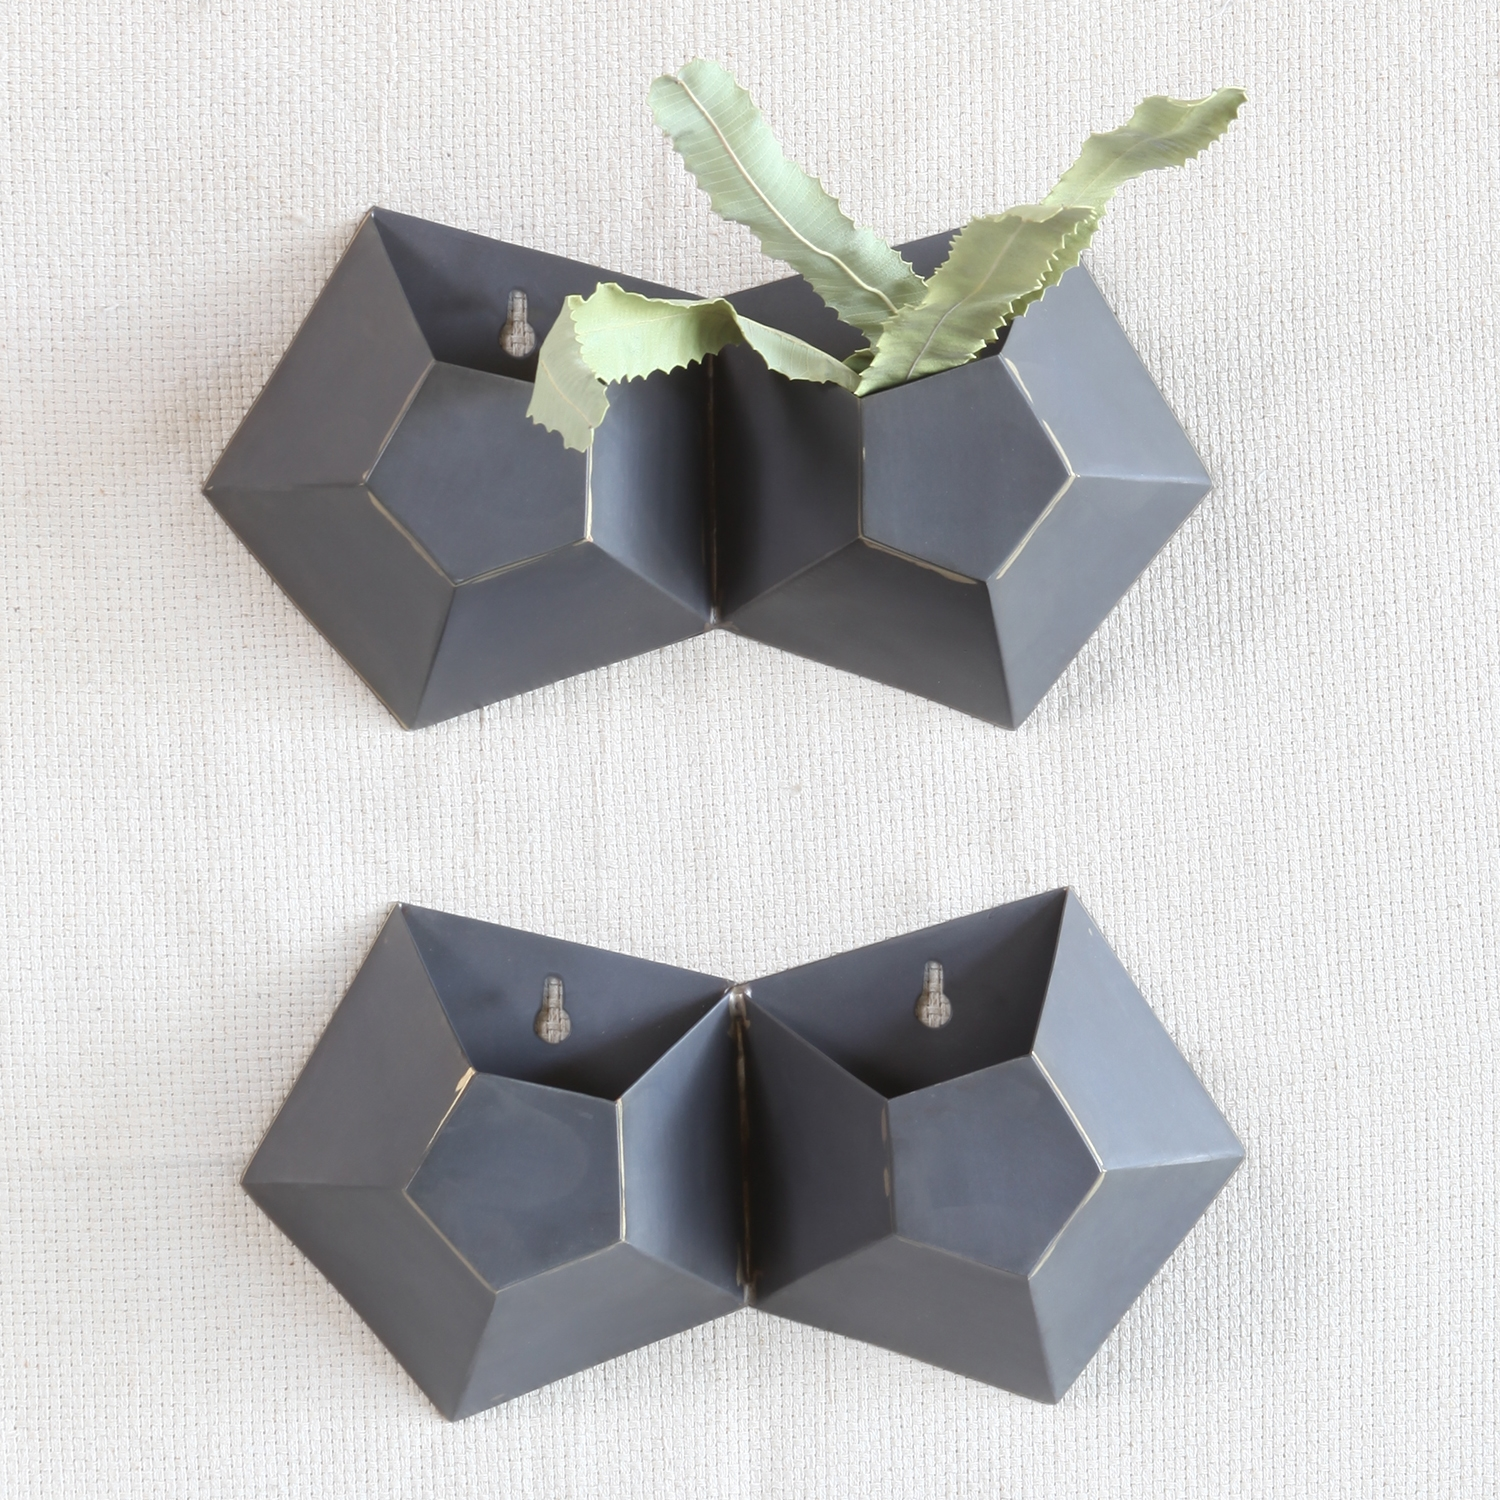 Double Hexagonal Iron Wall Vase by HomArt - Seven Colonial on Iron Wall Vases id=35816